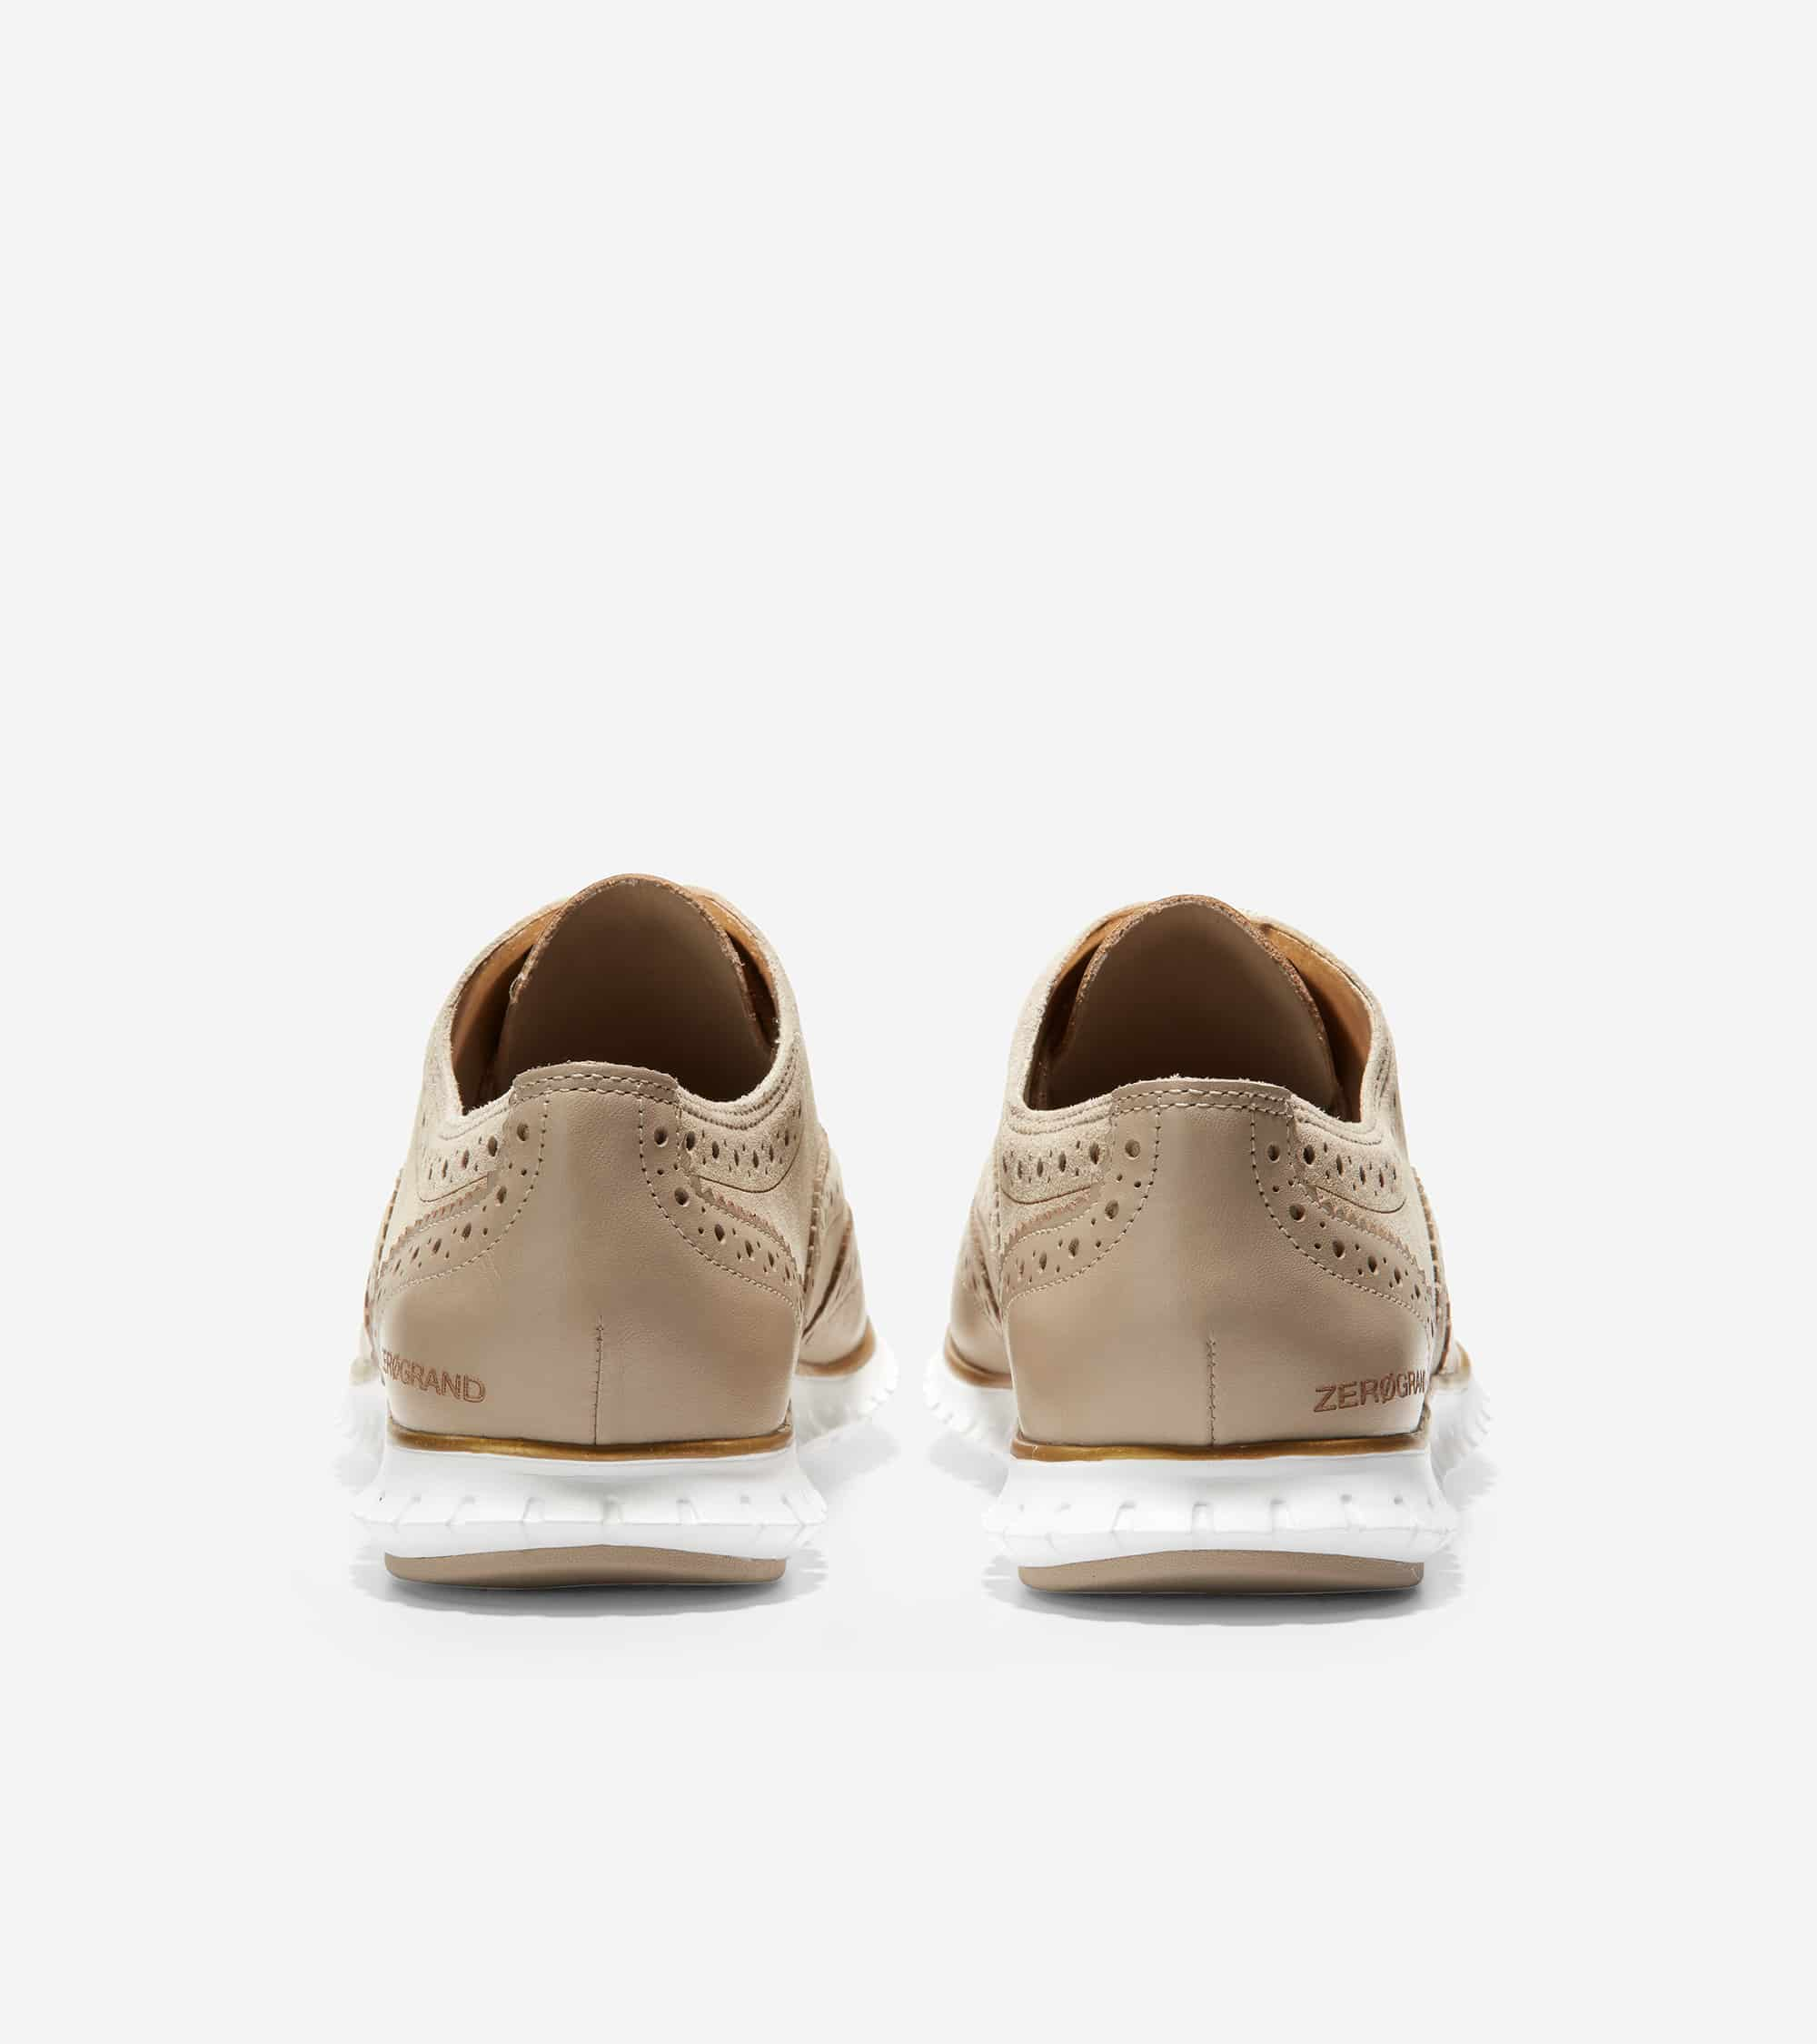 Cole Haan ZERØGRAND Wing Ox Closed Hole Ii Rye Suede / Leather / Ch Gold / Optic White Midsole / Rye Rubber Pods